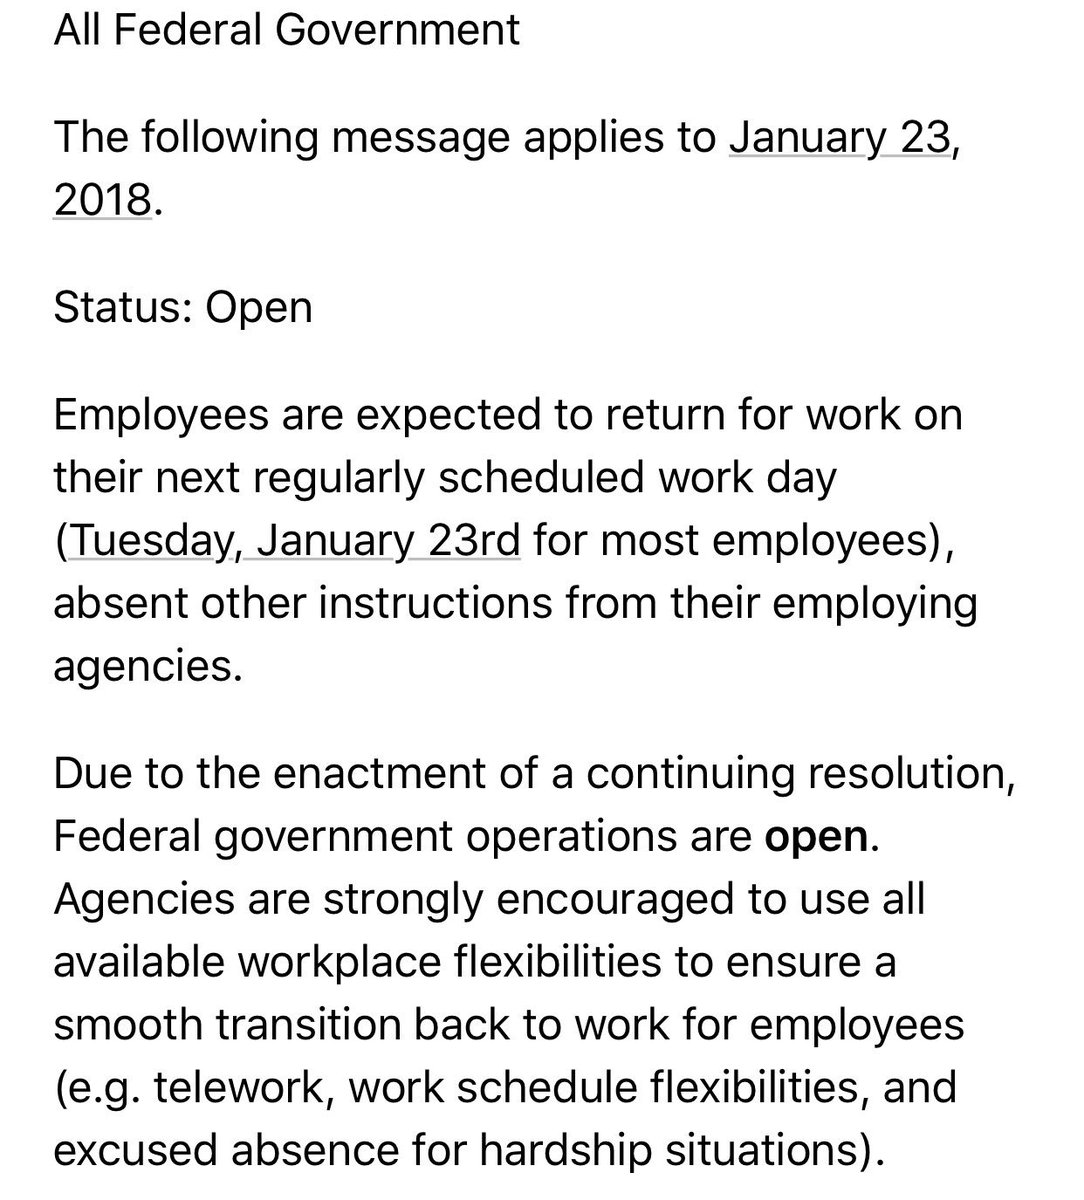 """OPM: """"Due to the enactment of a continuing resolution, Federal government operations are open."""""""